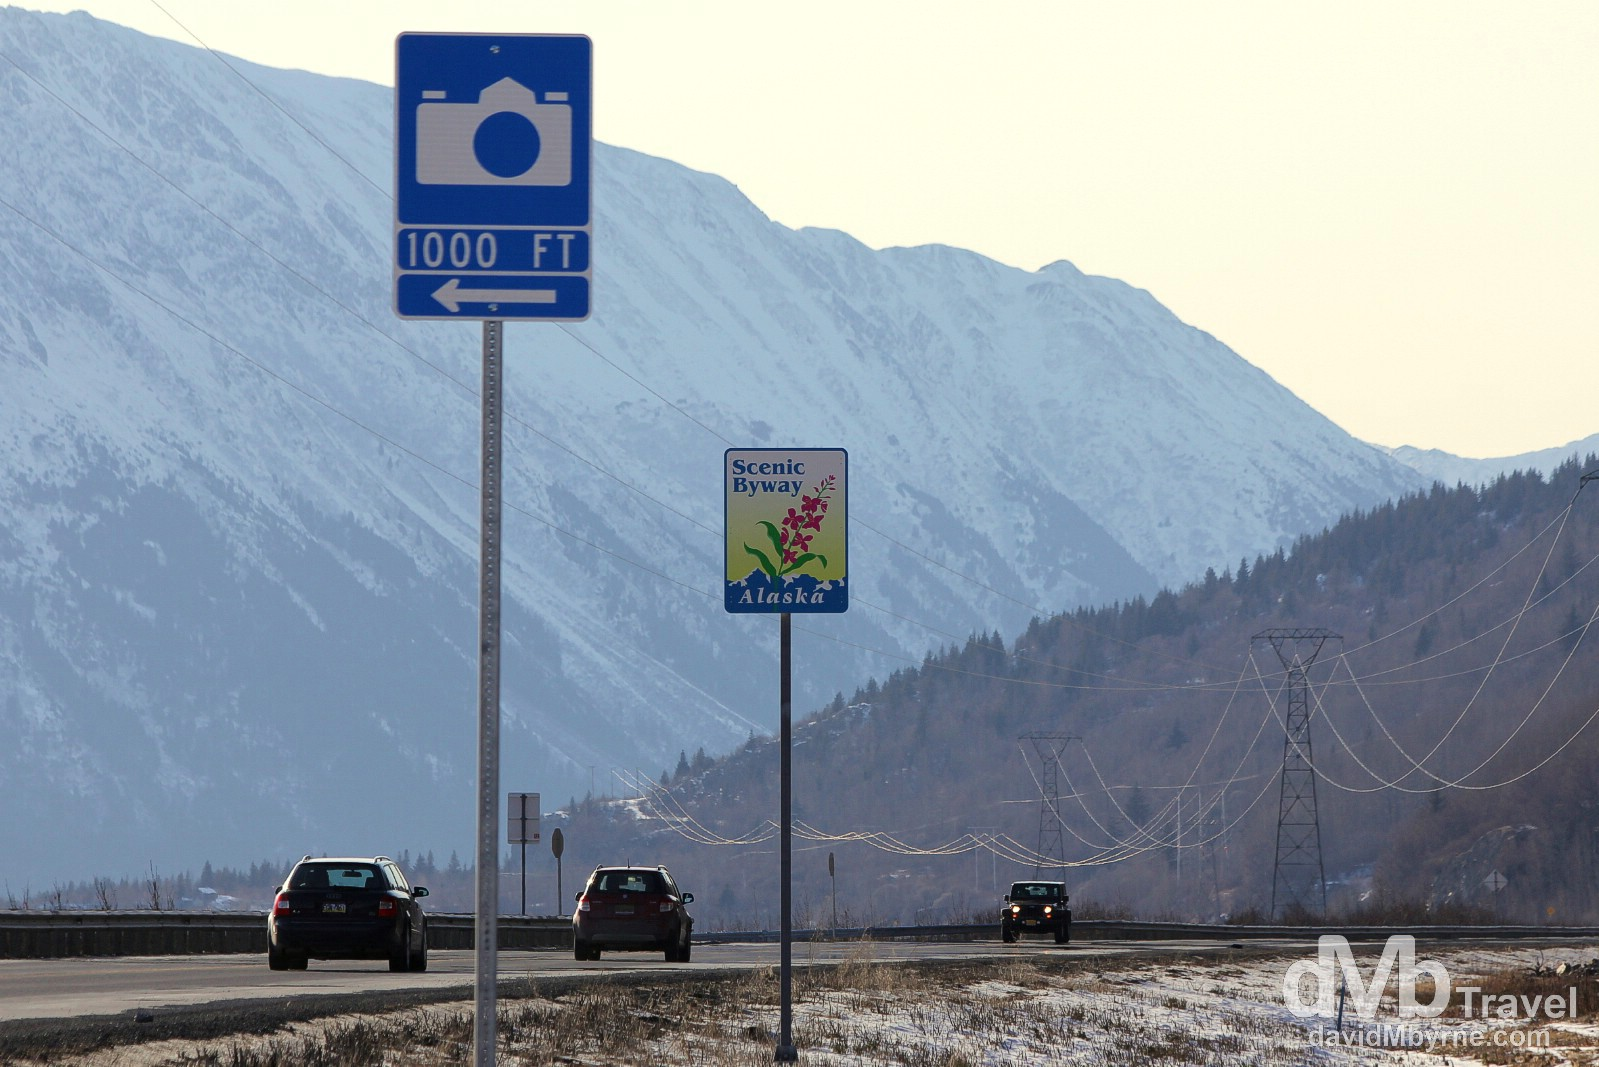 Roadside signage proves advanced warning for upcoming scenic viewpoints. I must have hit most of these scenic vista points while driving both the Seward & Sterling Highways on Alaska's Kenai Peninsula. This particular sign is on the Seward Highway not too far from Anchorage. Alaska, USA. March 18th 2013.